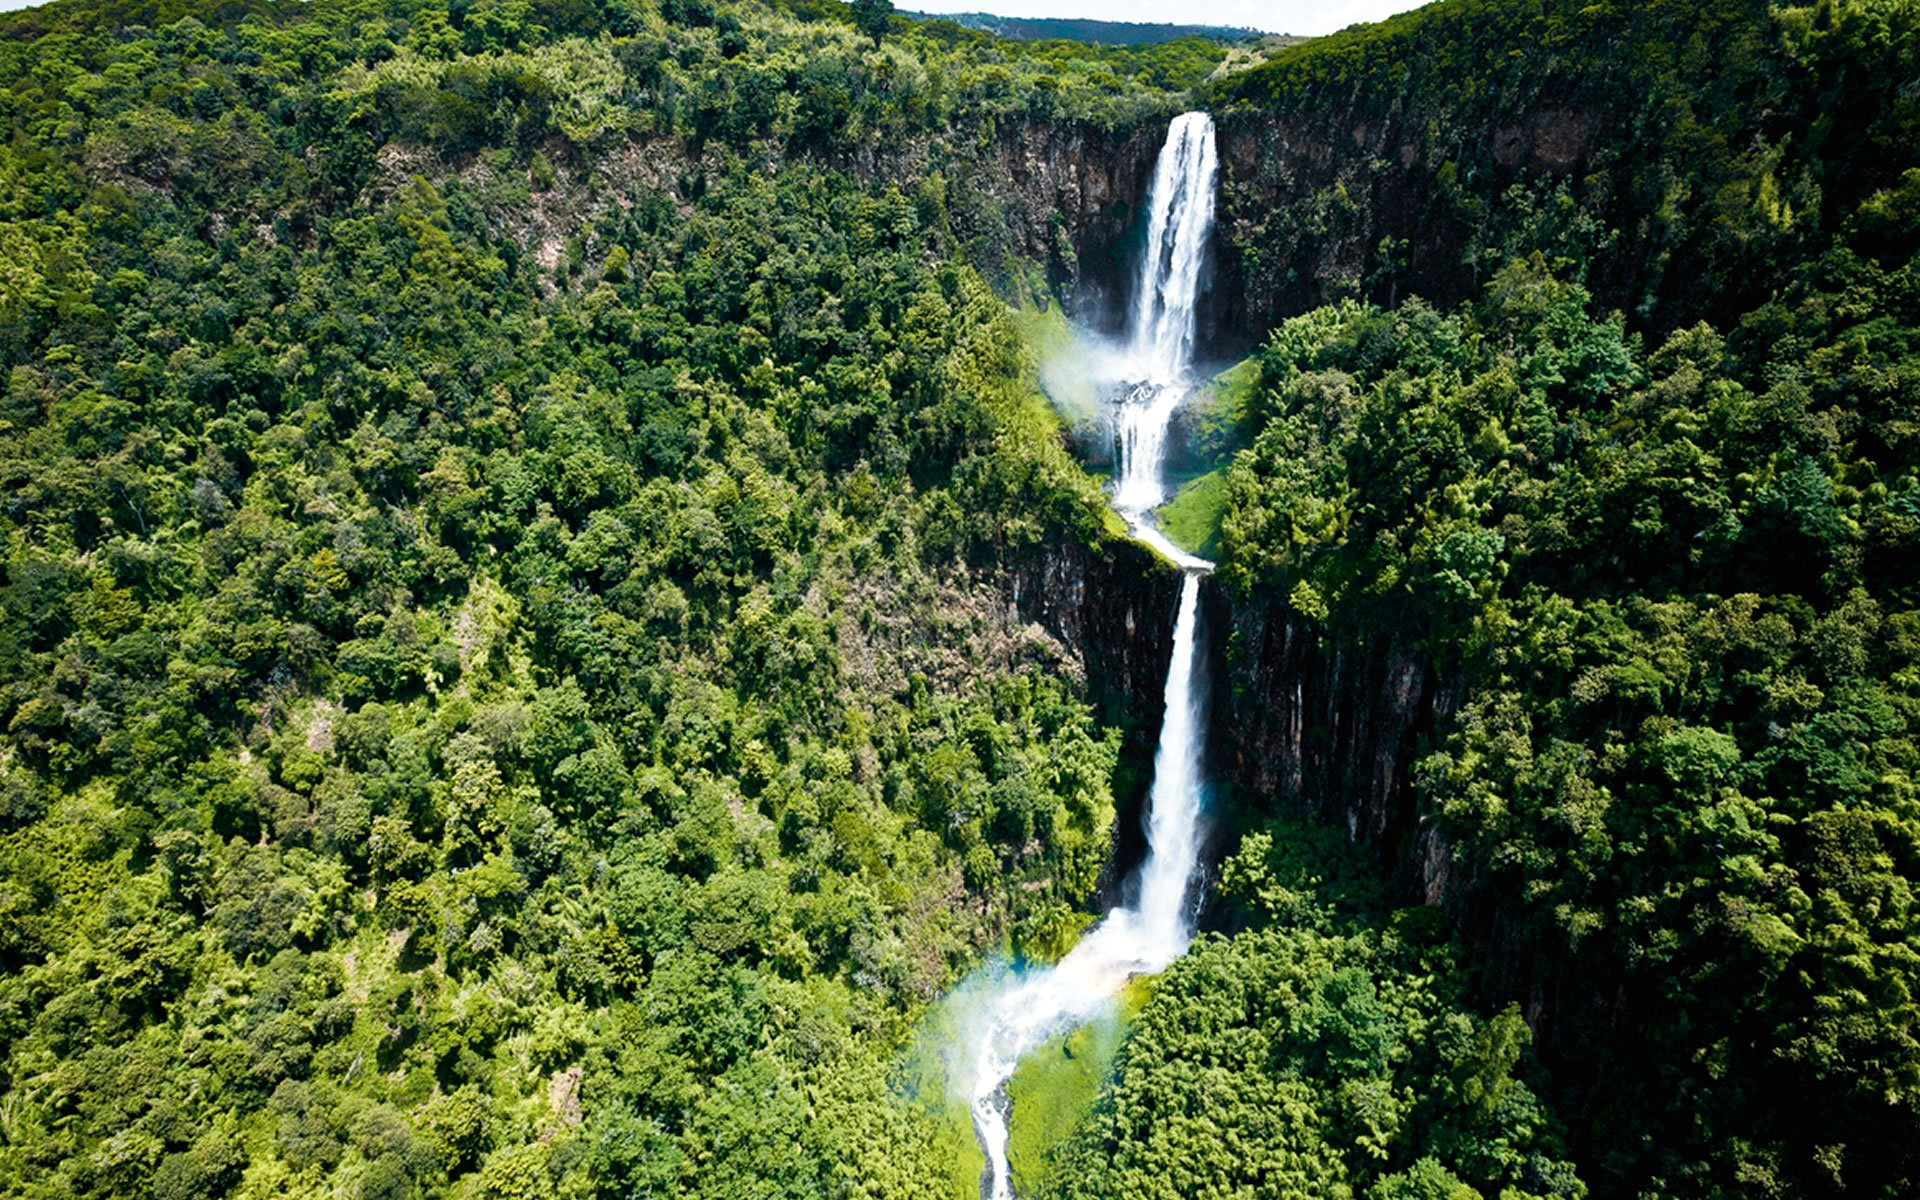 Karuru Falls in the Aberdare National Park is second tallest waterfall in Kenya. The tallest is Gura.